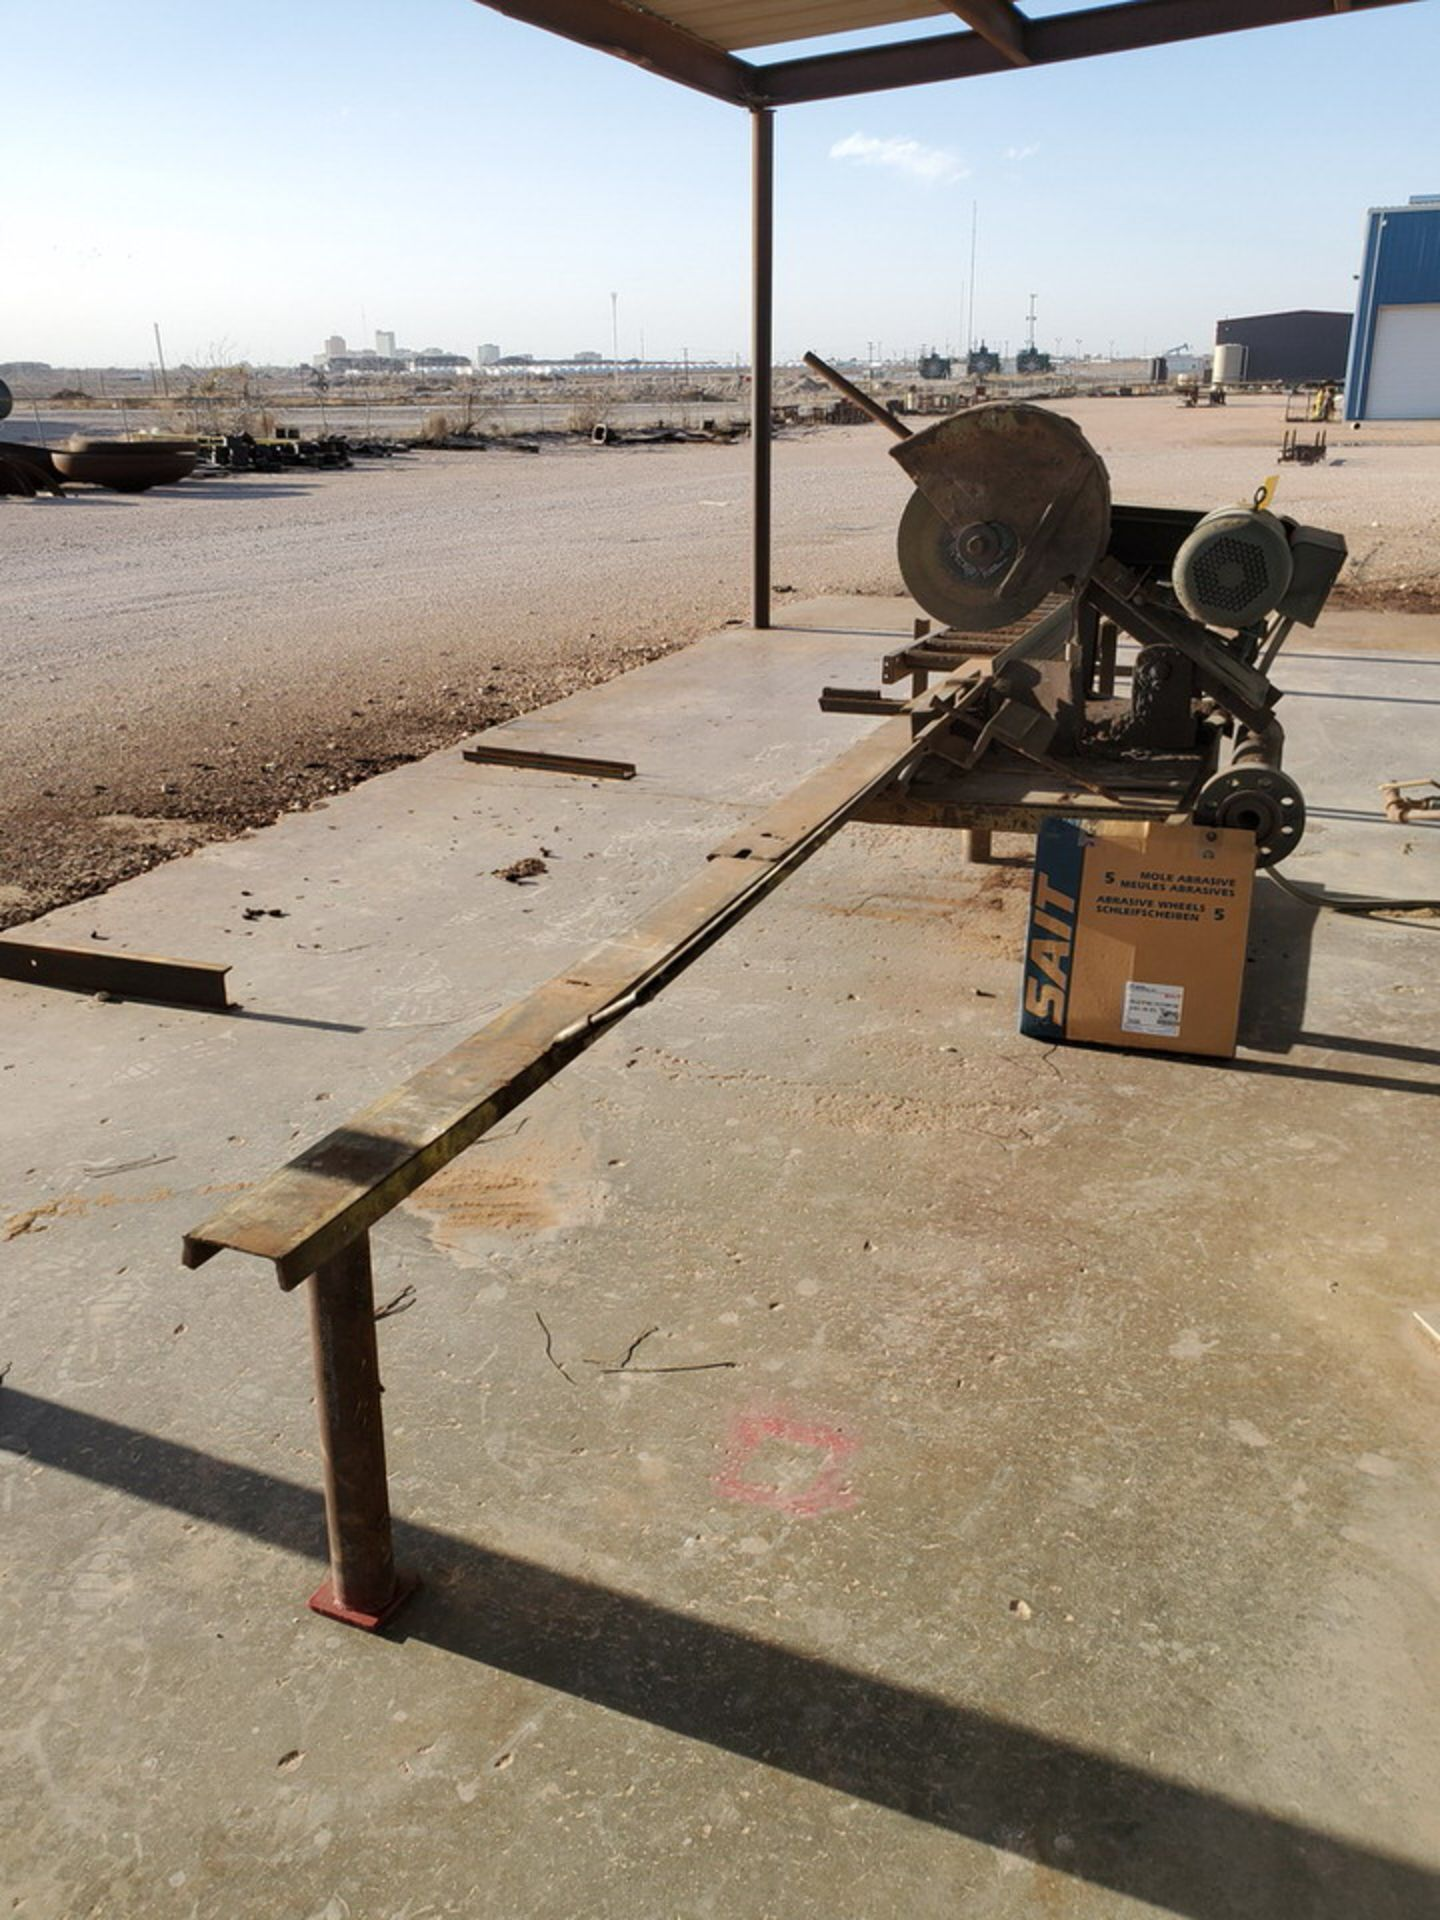 "18"" Chop Saw 10HP, 3450RPM, 230V, Baldor Motor; W/ Rolling Conveyor, 10' x 16-1/2"" - Image 2 of 11"